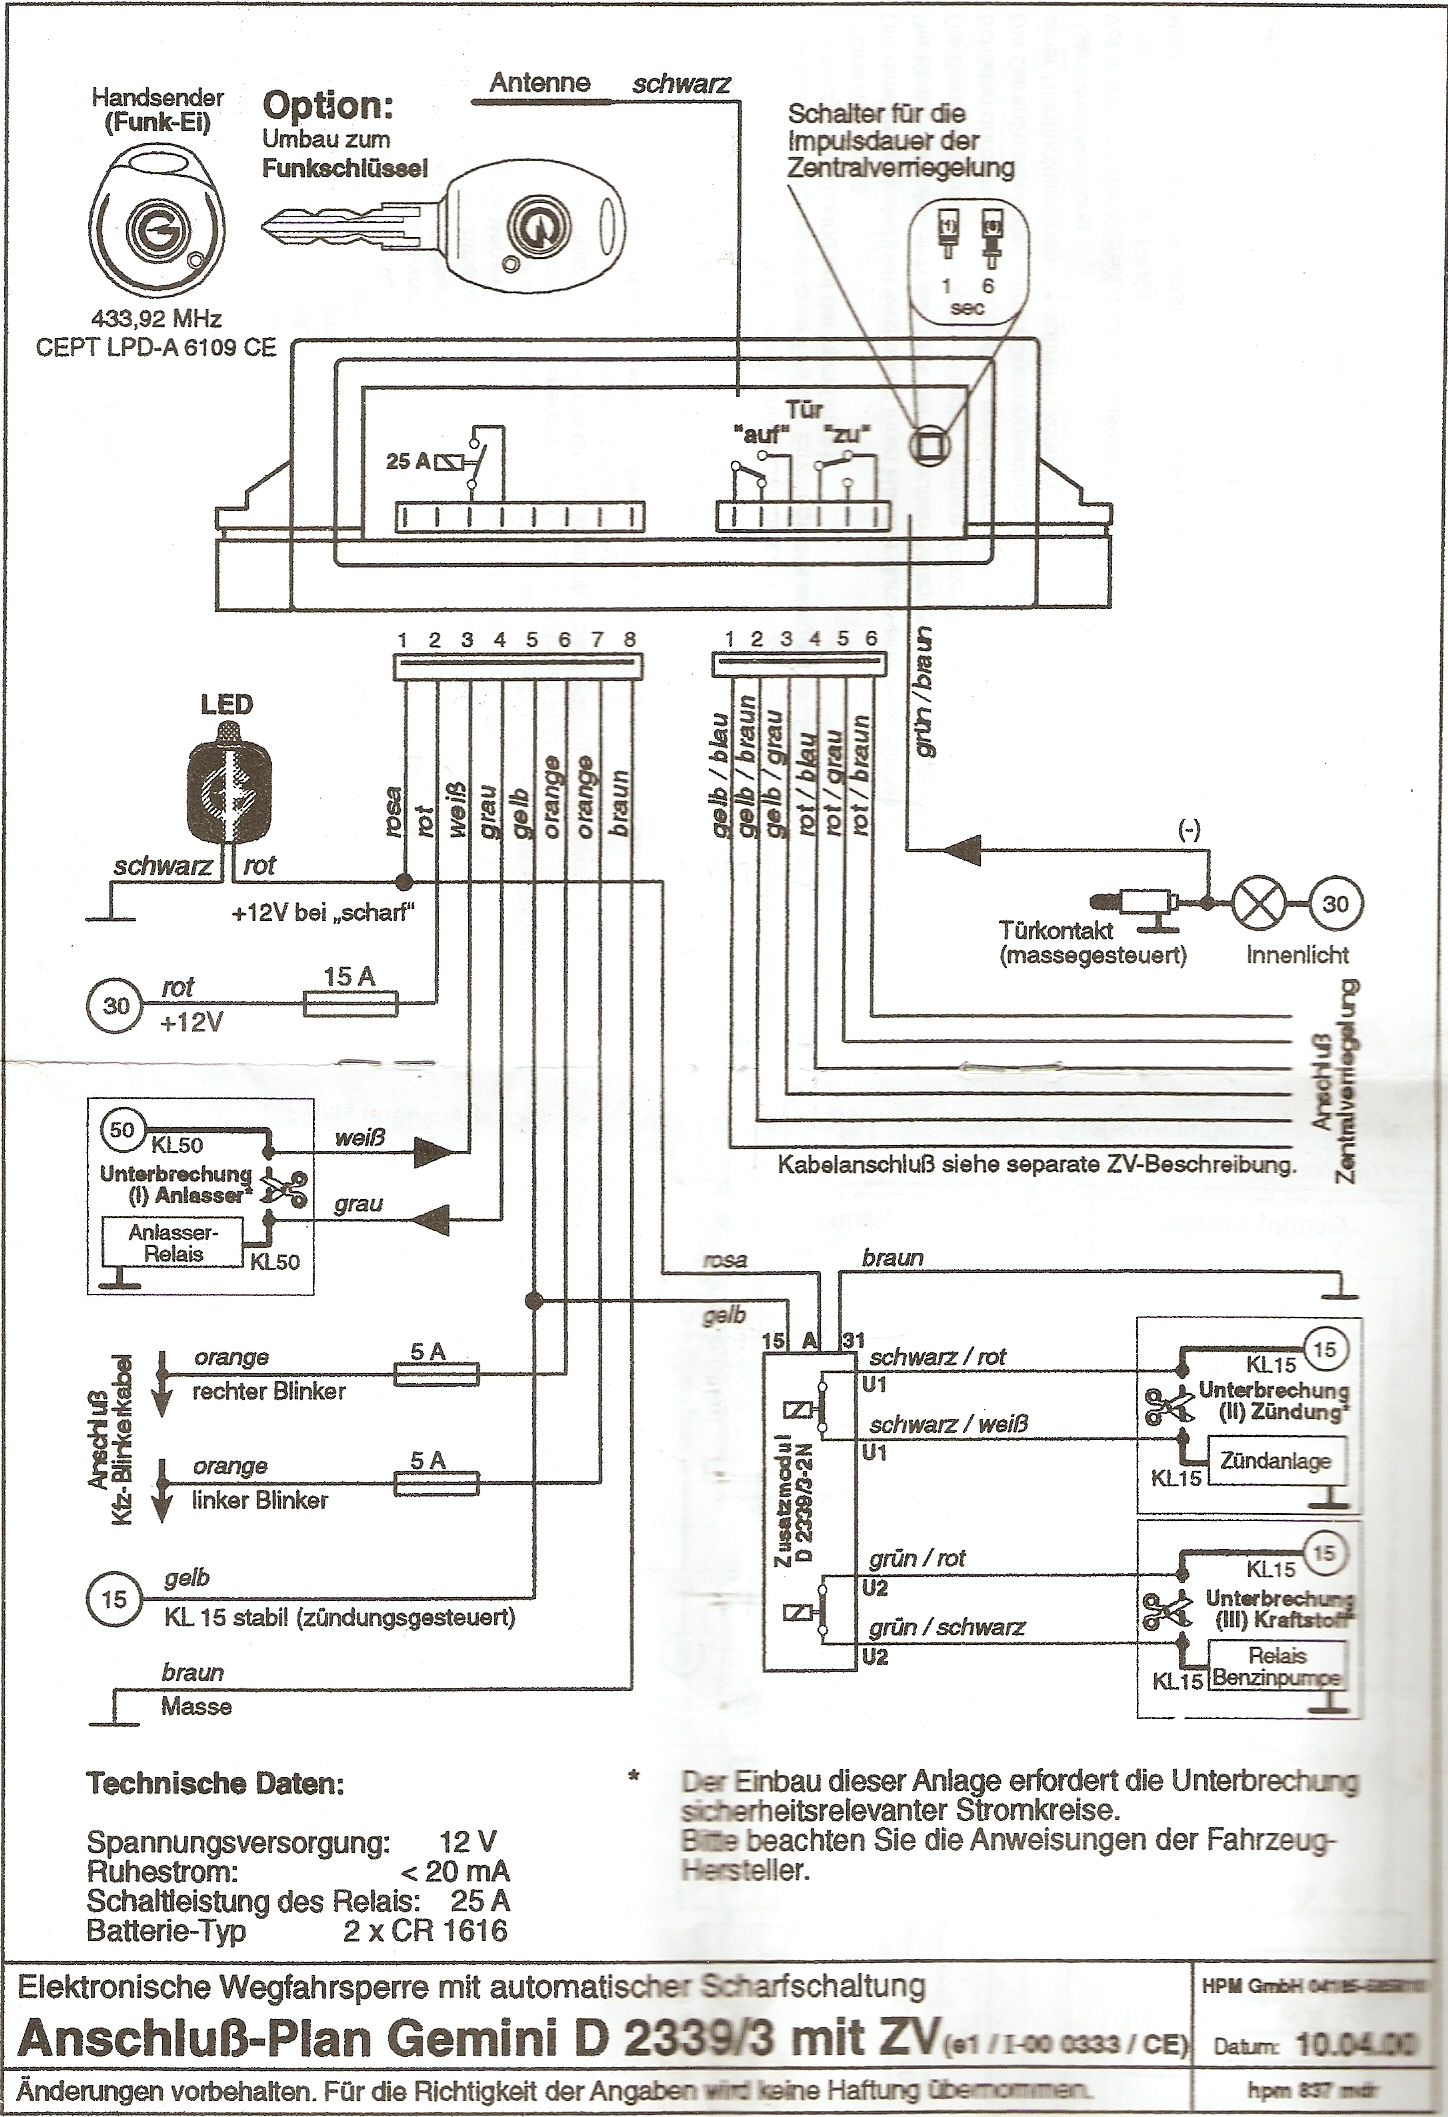 987b275999164d8e760e3ace019afb3b on Honda Accord Vacuum Diagram